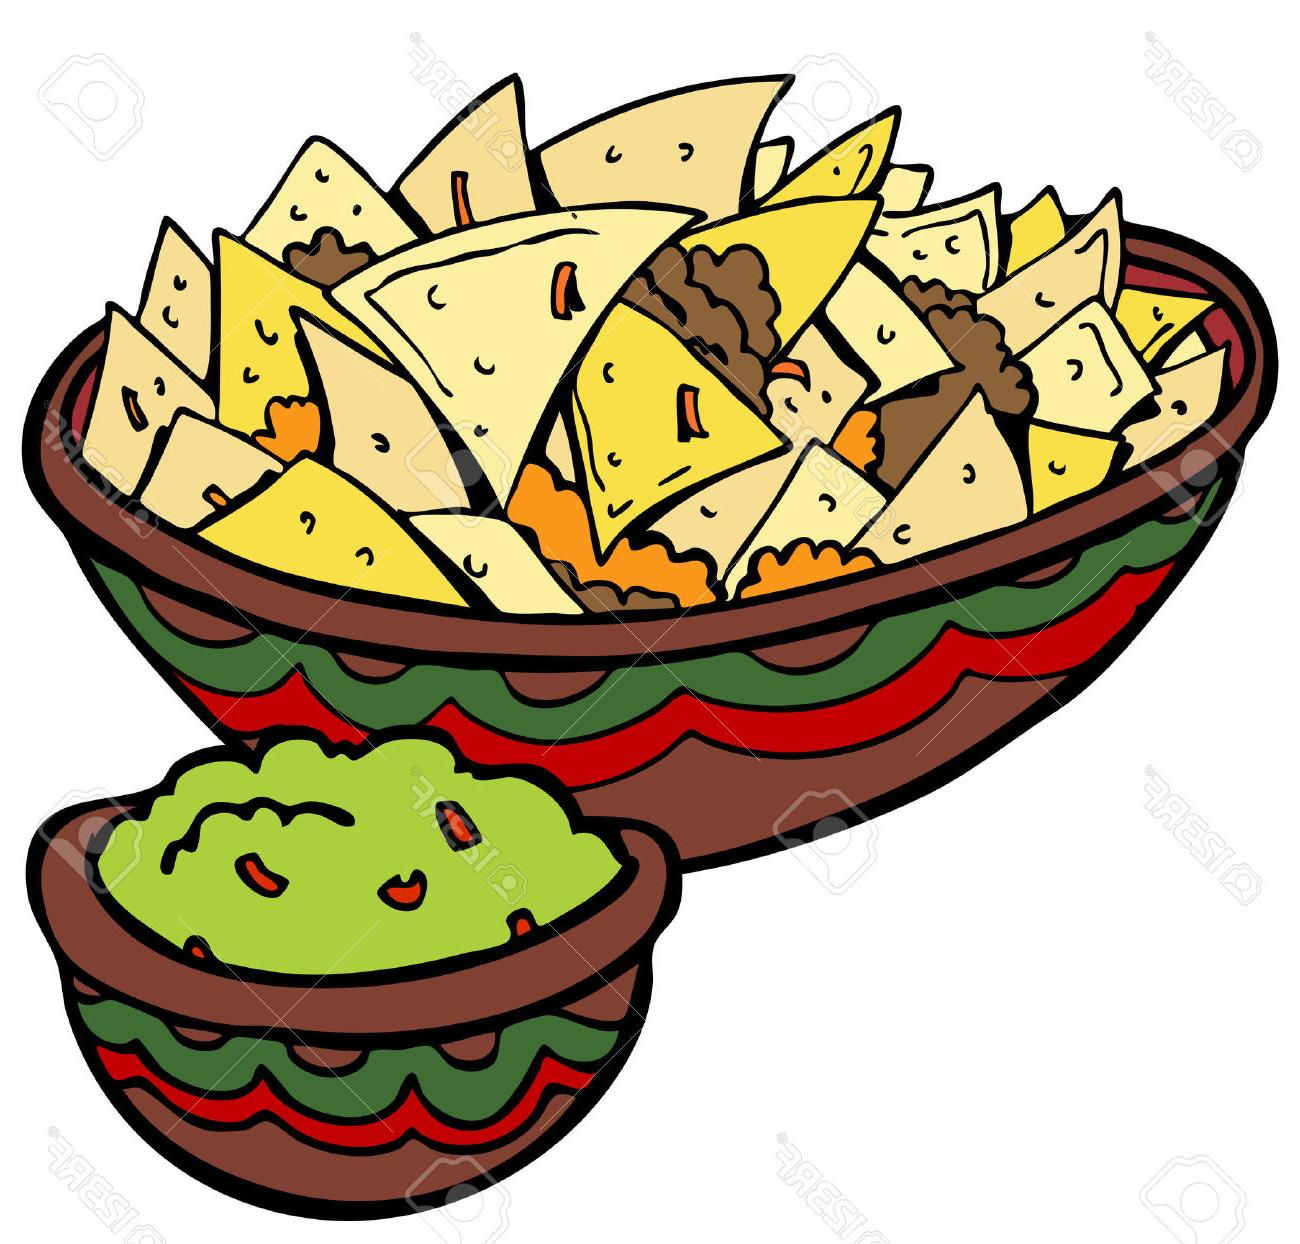 Nacho clipart image transparent stock Nachos Clipart | Free download best Nachos Clipart on ClipArtMag.com image transparent stock